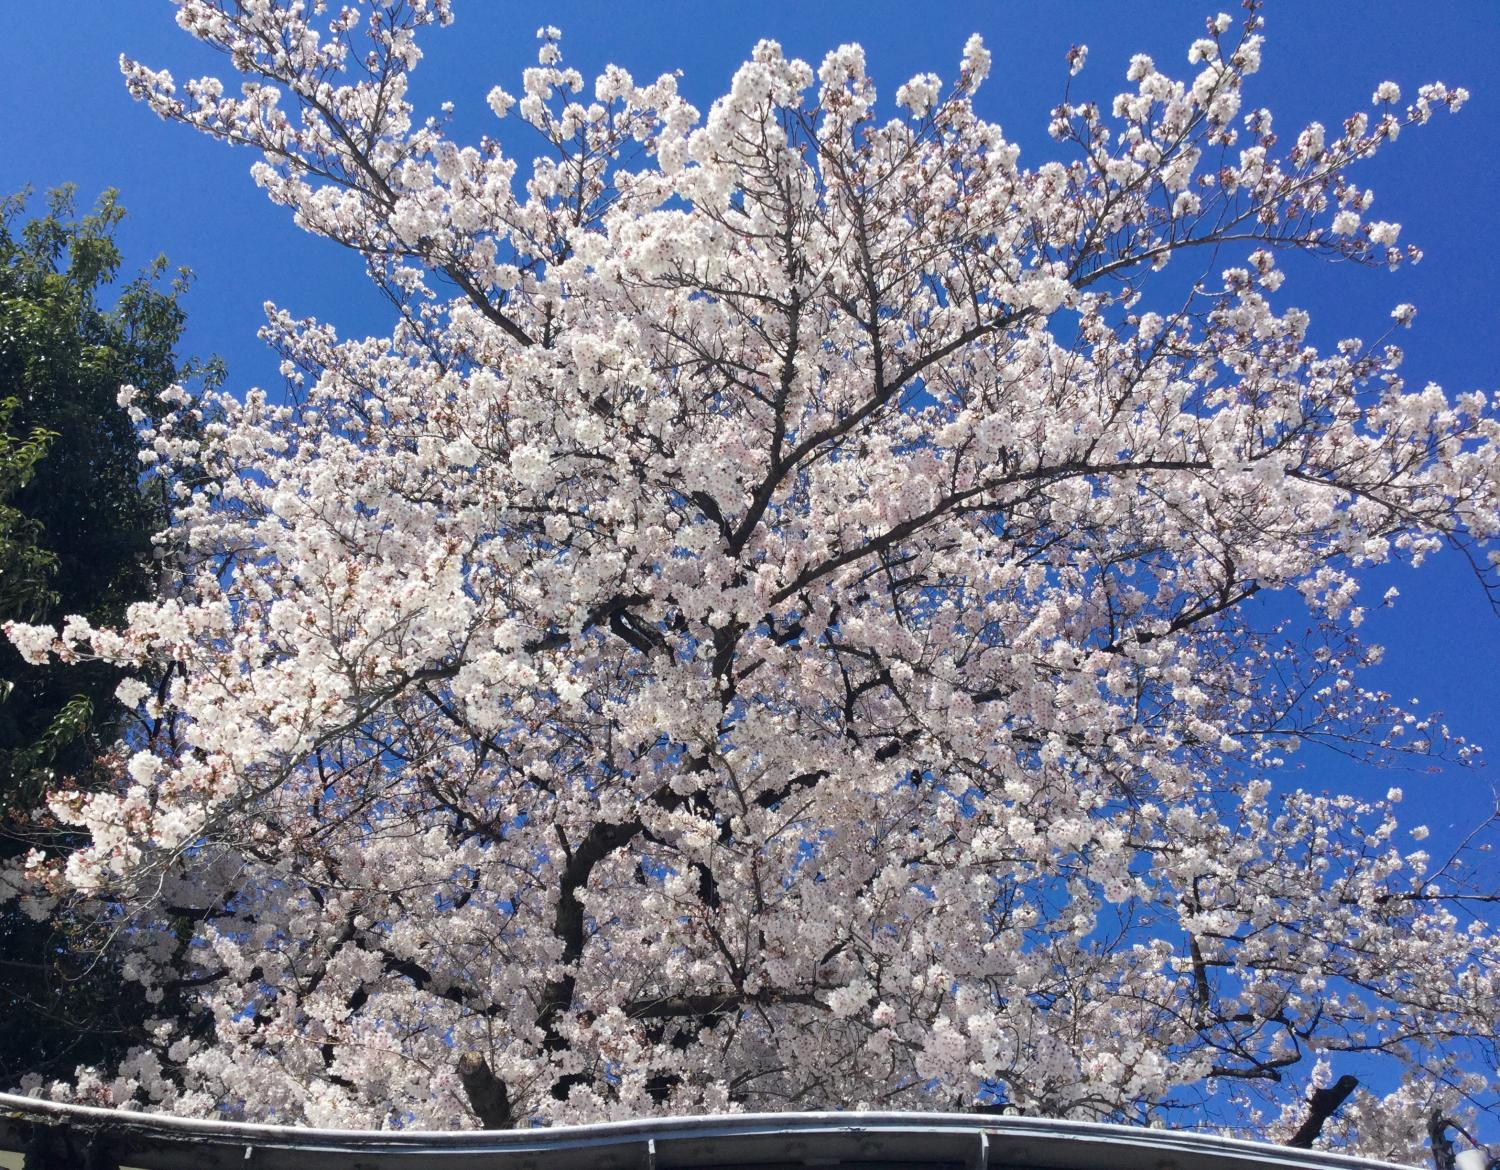 Is in full blossom; image